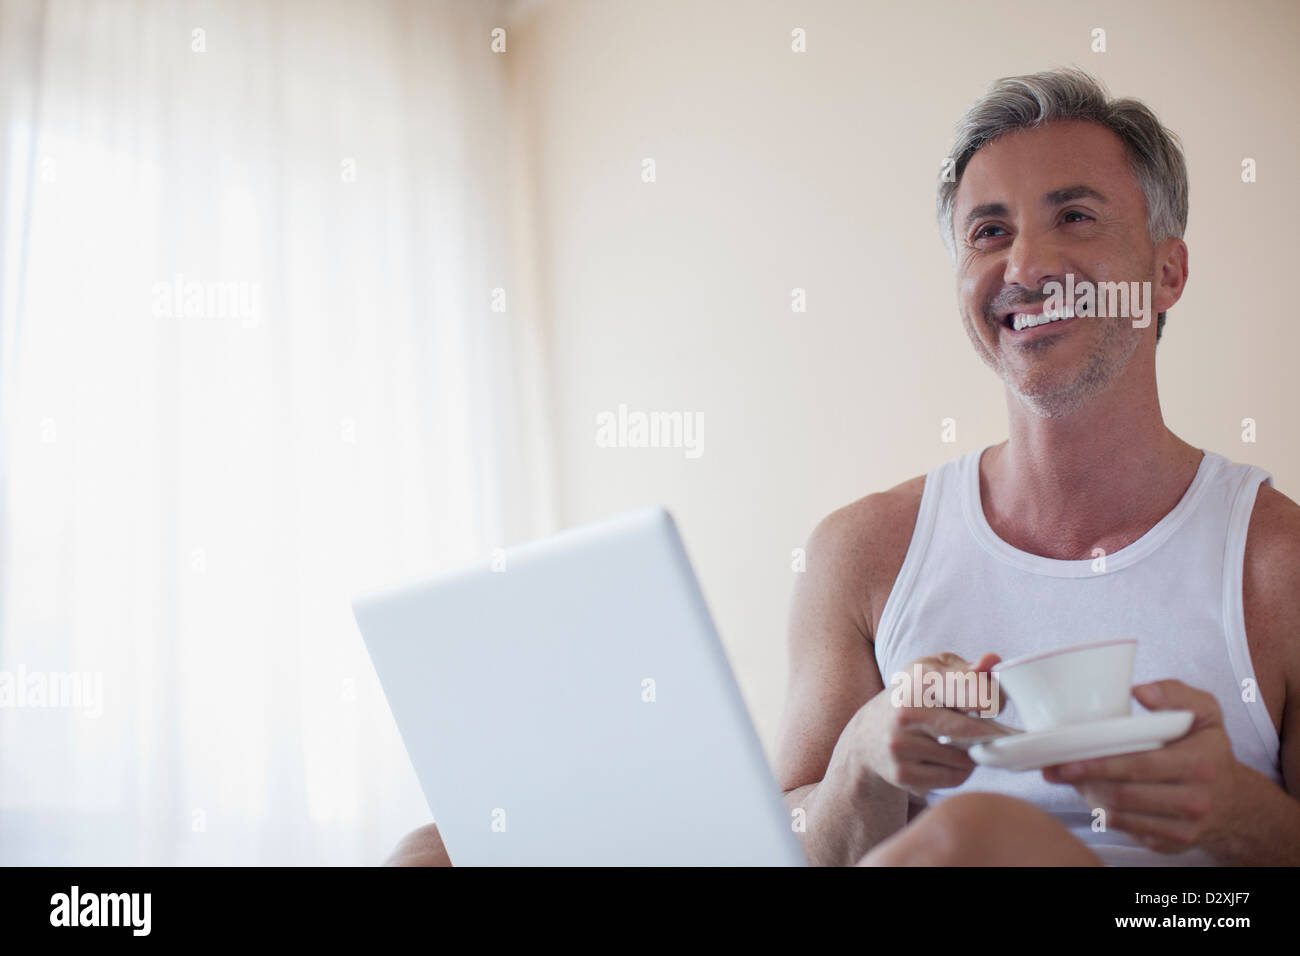 Smiling man drinking coffee and using laptop in bedroom - Stock Image